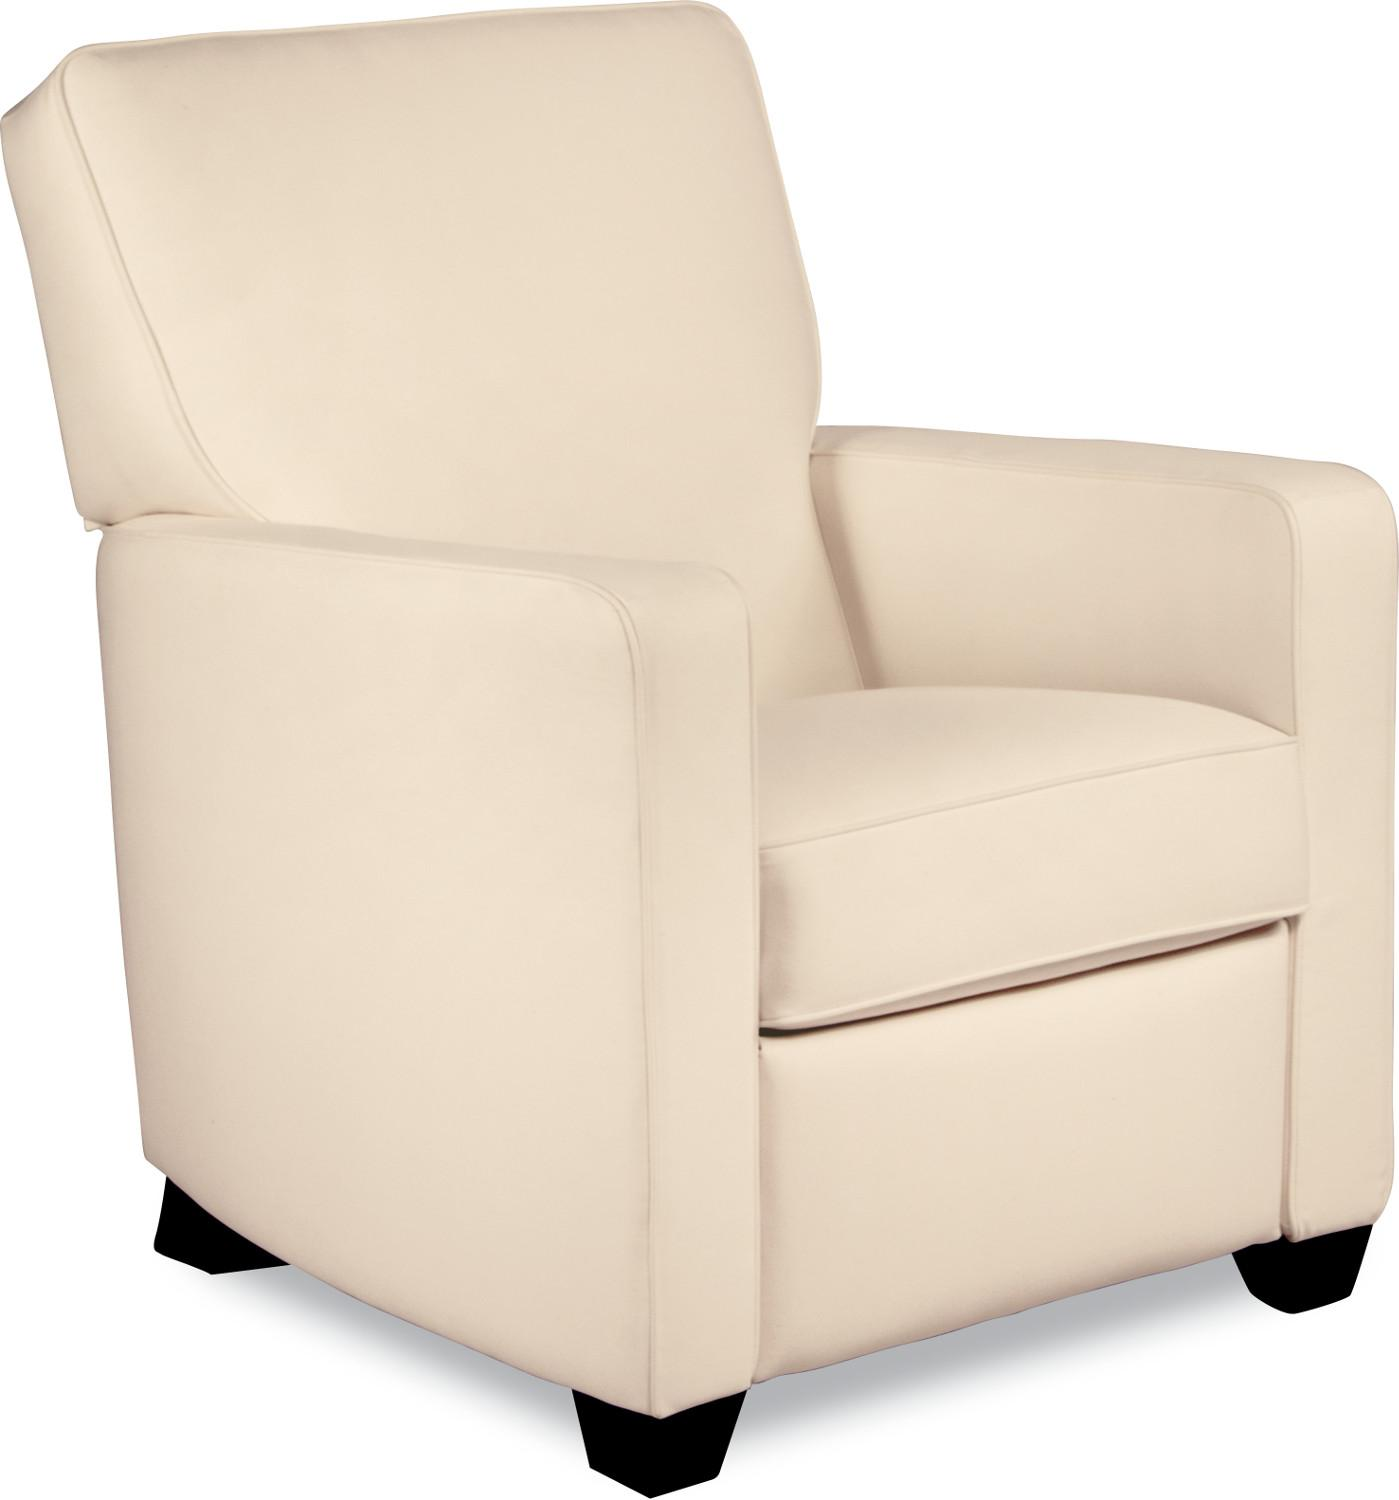 La Z Boy Recliners Midtown Contemporary High Leg Recliner Reid S Furniture High Leg Recliners